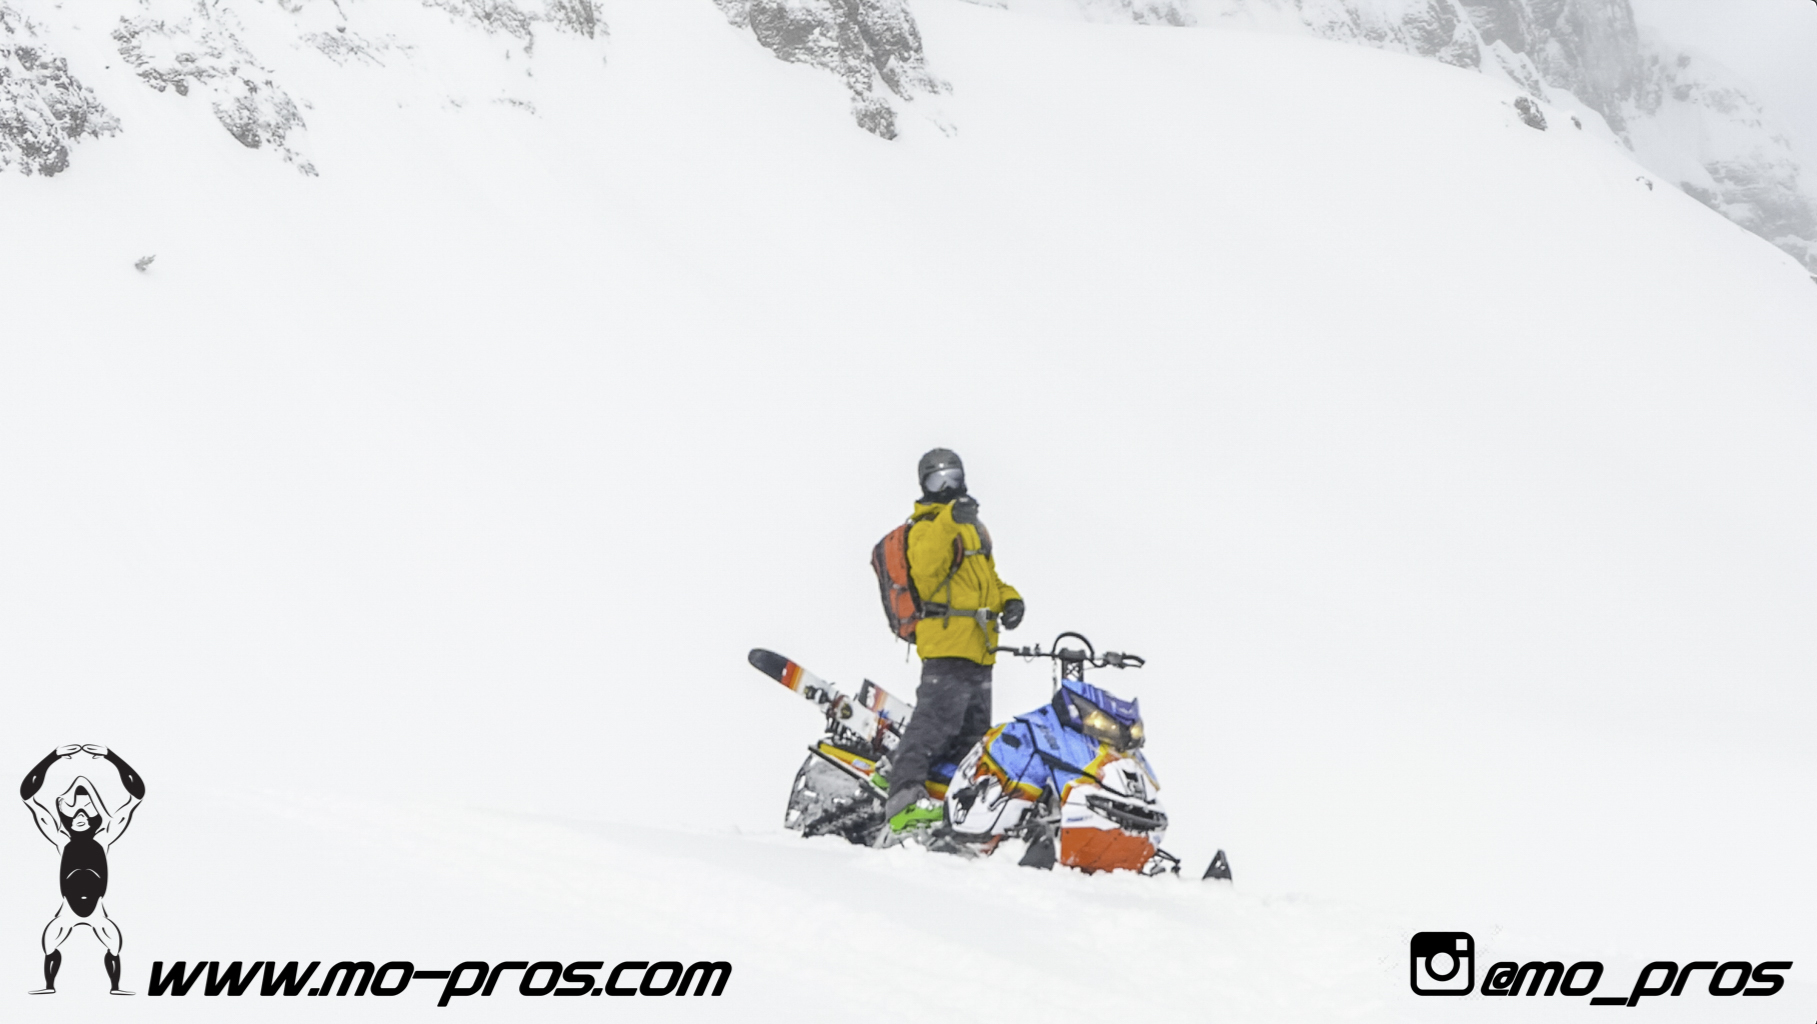 116_gas Rack_Gear_Gun Rack_LinQ Snowboard Ski_Ski_Snowbike_Timbersled Rack_Tsaina Rack_CFR rack_Cheetah Factory Racing_Snowboard rack_snowboard_Snowboarding_snowmobile bag_Snowmobile_timbersled bag_T.jpg